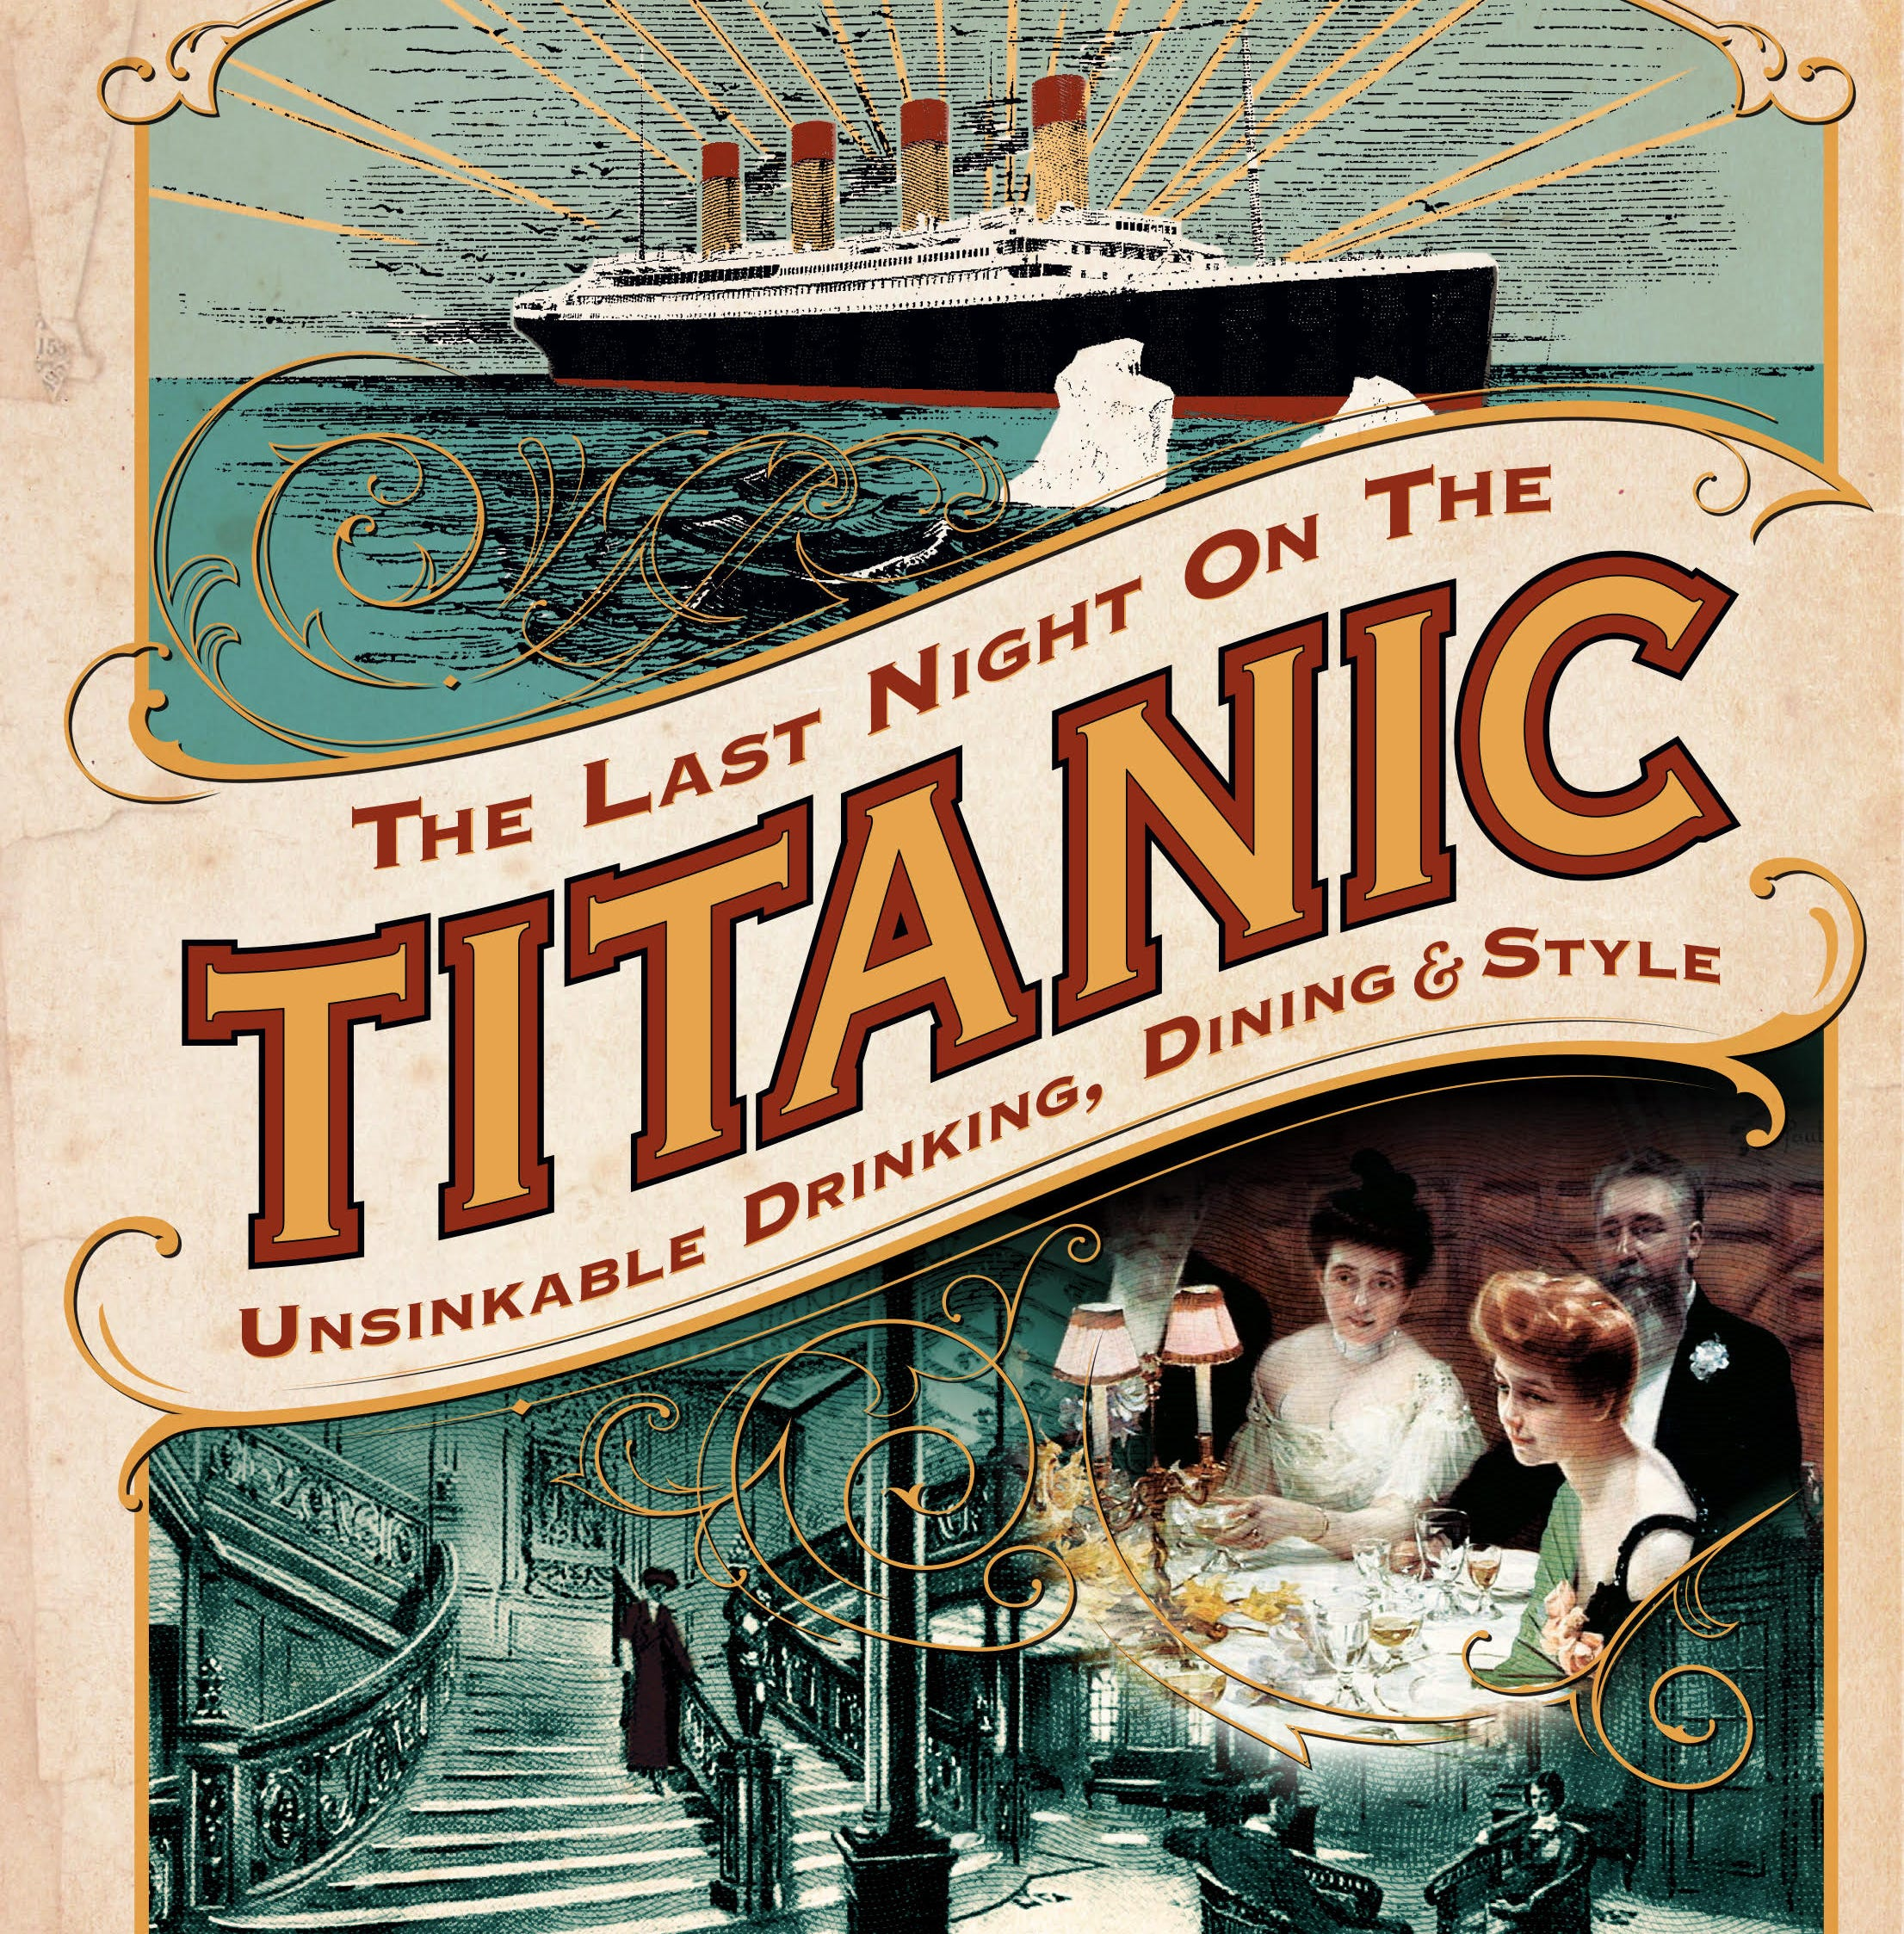 Wausau native's book looks at what Titanic passengers ate and drank before the iceberg hit